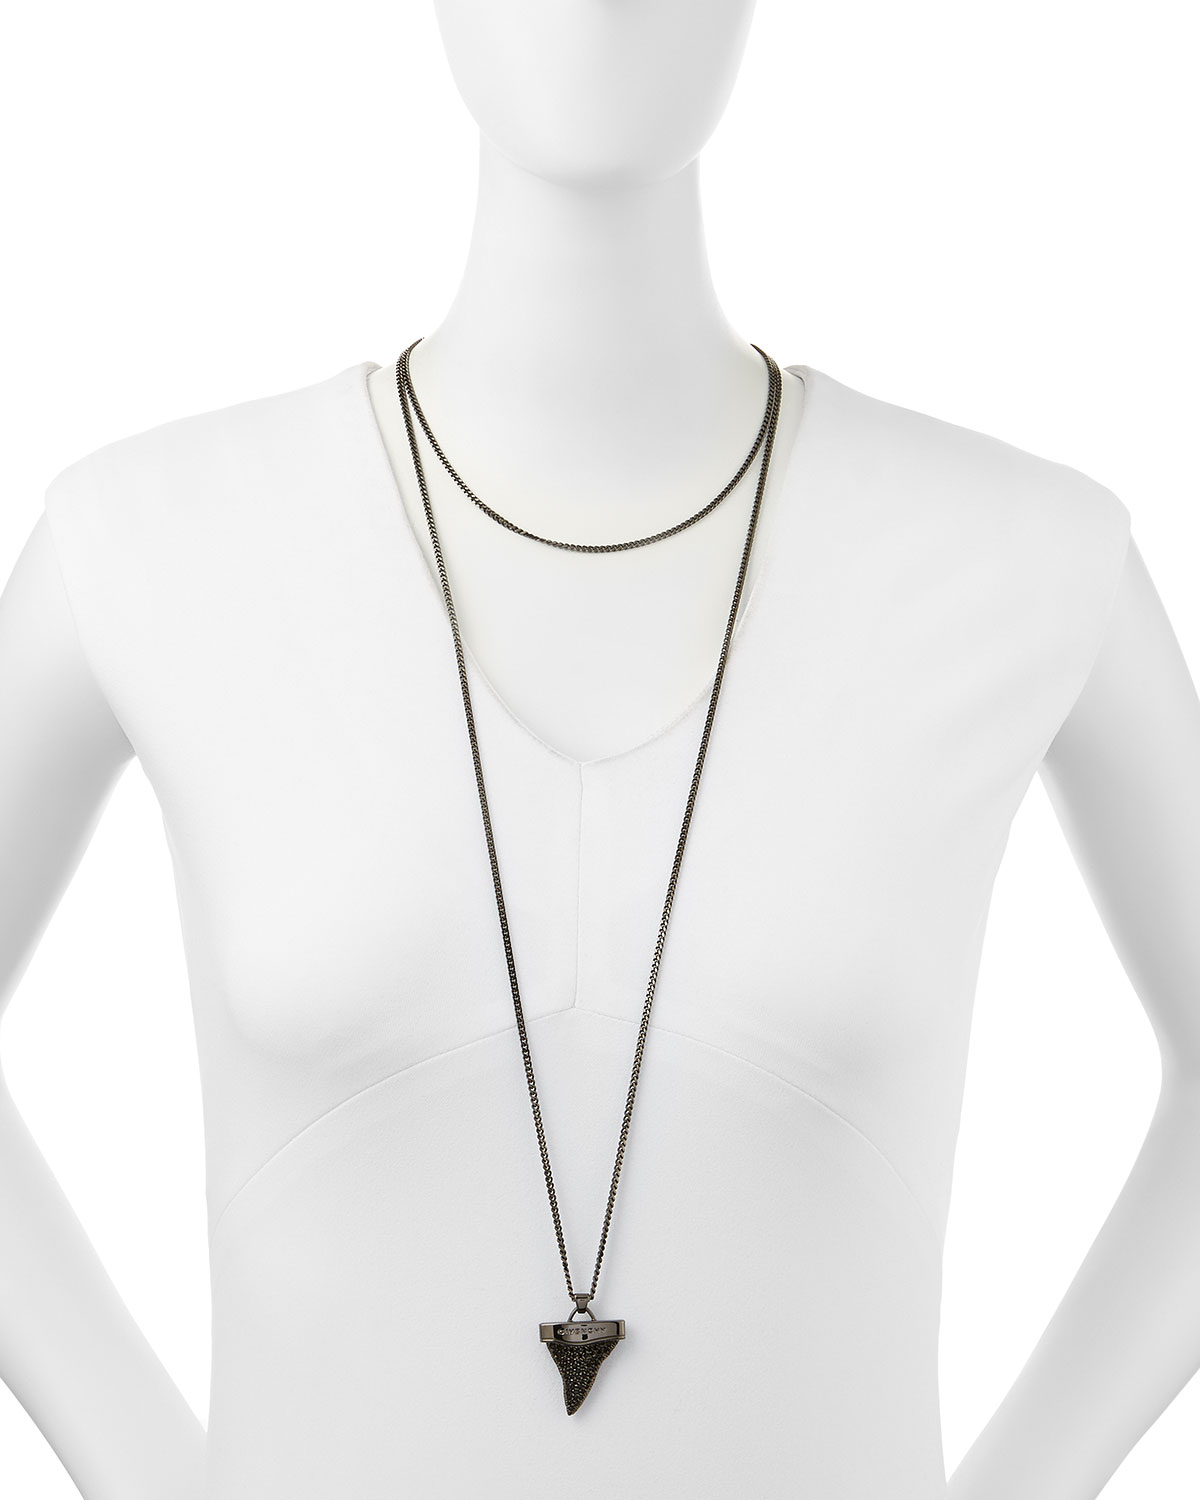 Gunmetal Pave Shark Tooth Necklace, 36